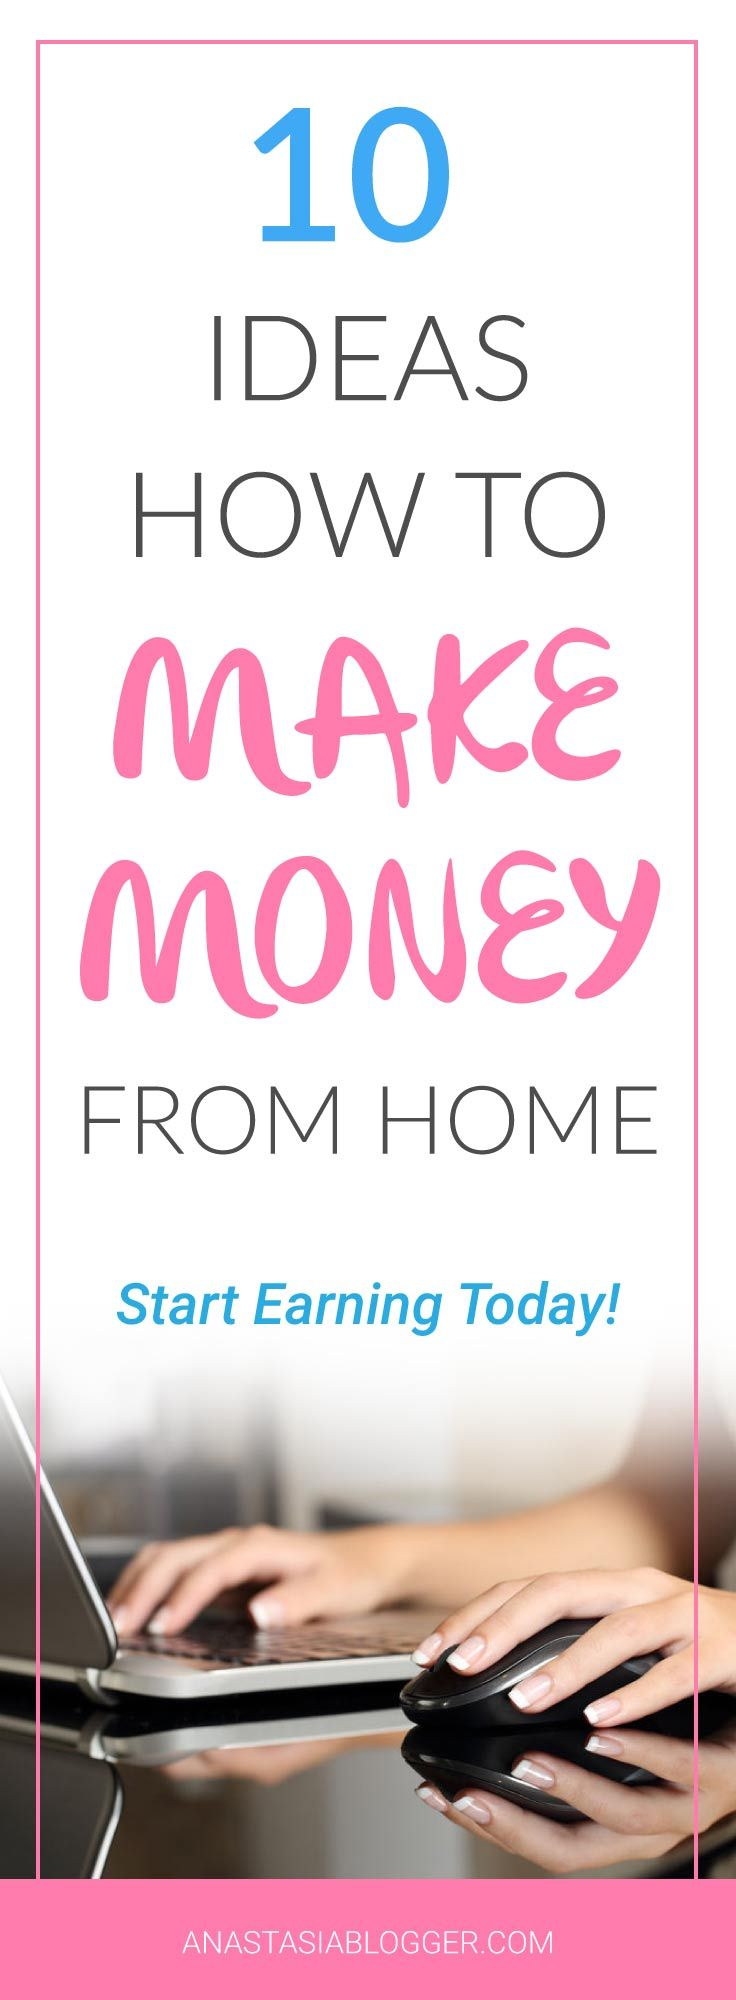 10 Ideas How To Make Money From Home Start Earning Today